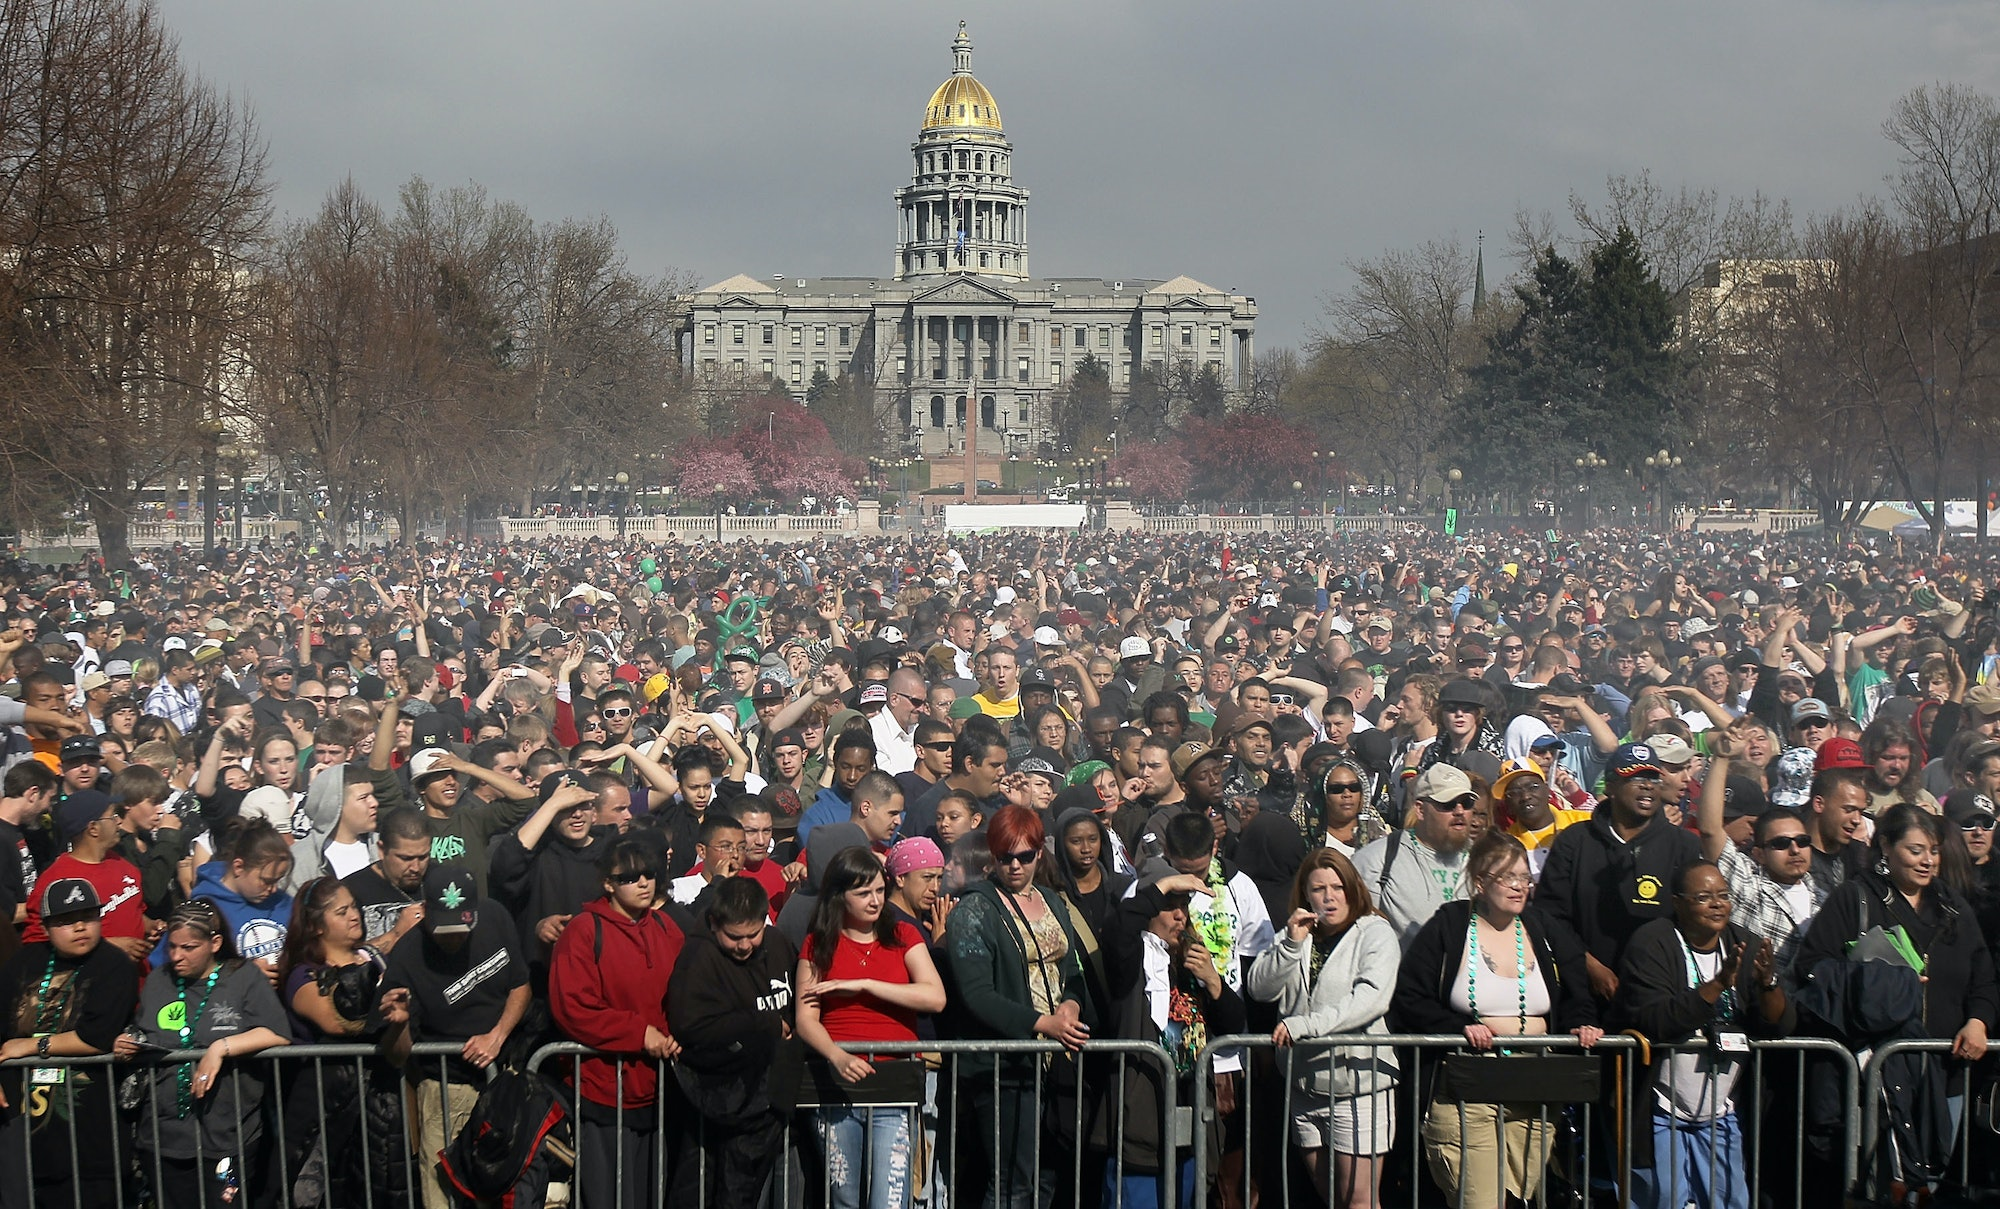 Marijuana smoke rises from a smoking crowd on April 20,2010, at a pro-pot '4/20' celebration in front of the State Capitol building in Denver, Colorado.